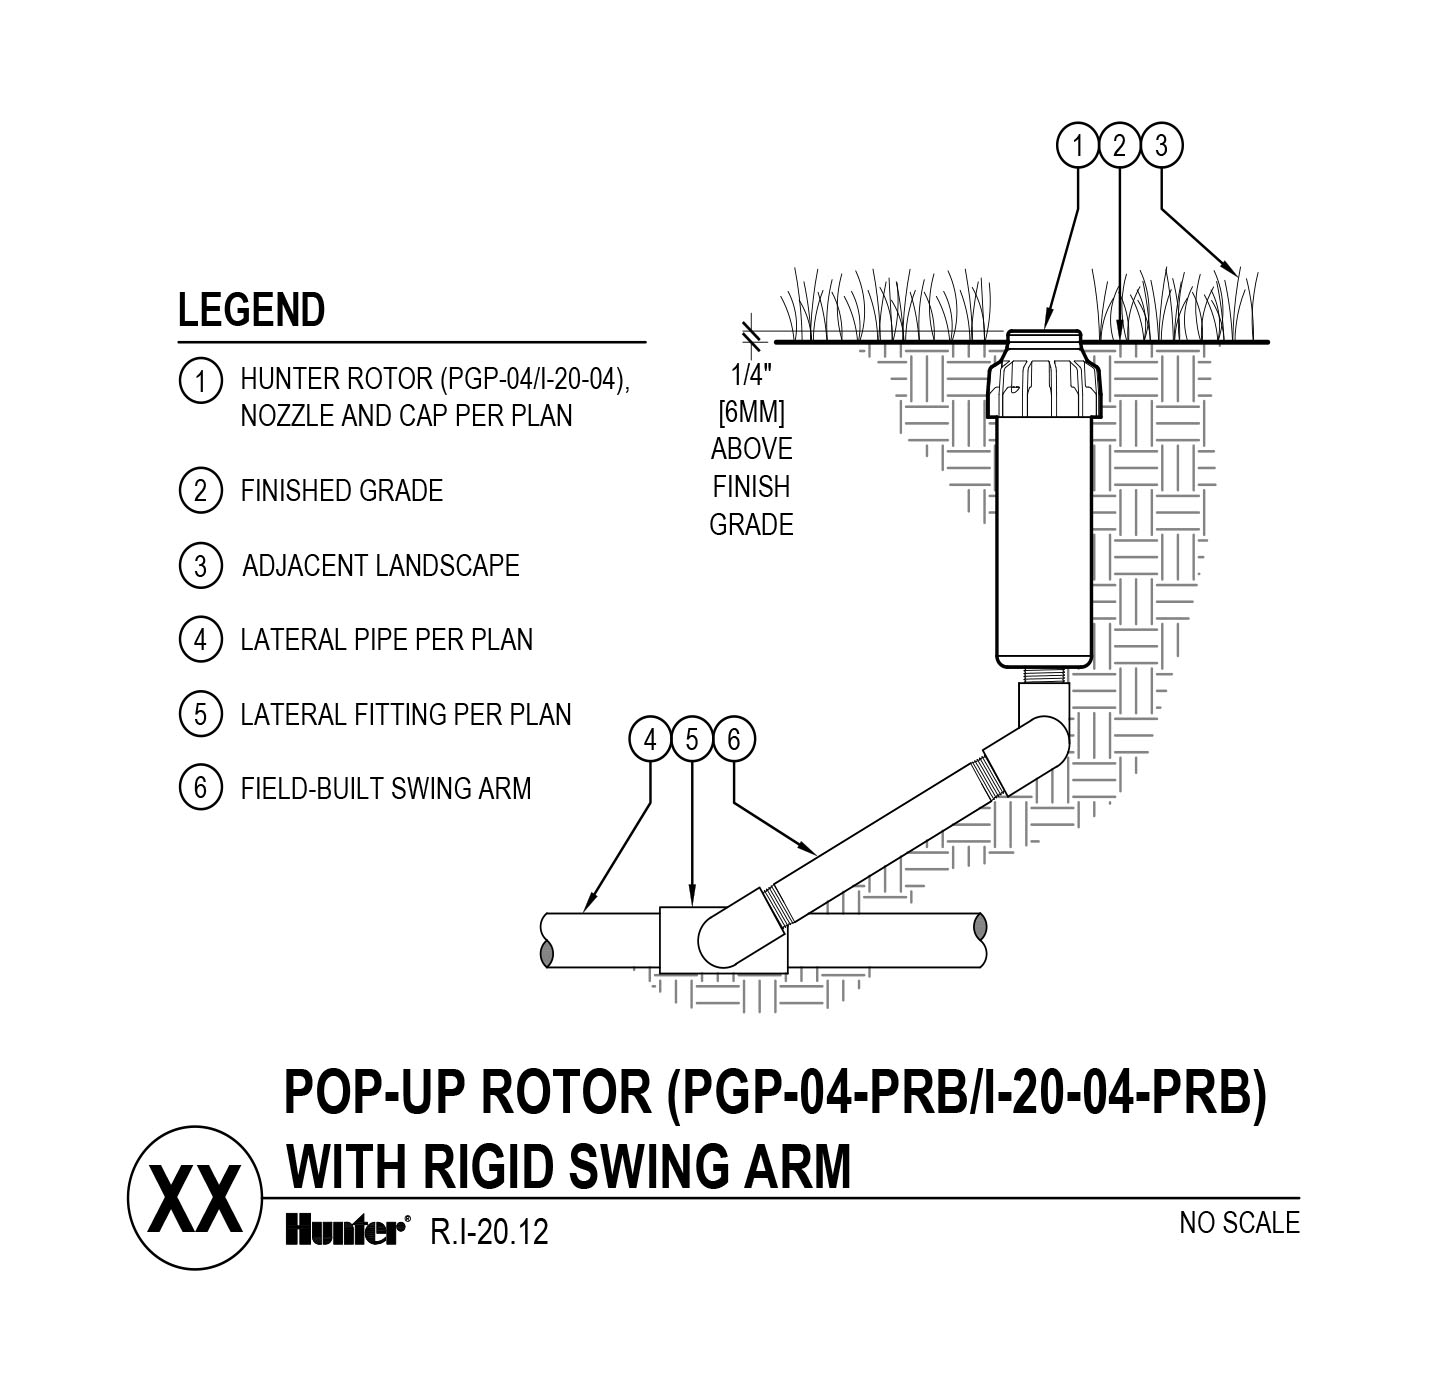 CAD - I-20-04-PRB PGP-04-PRB with swing arm